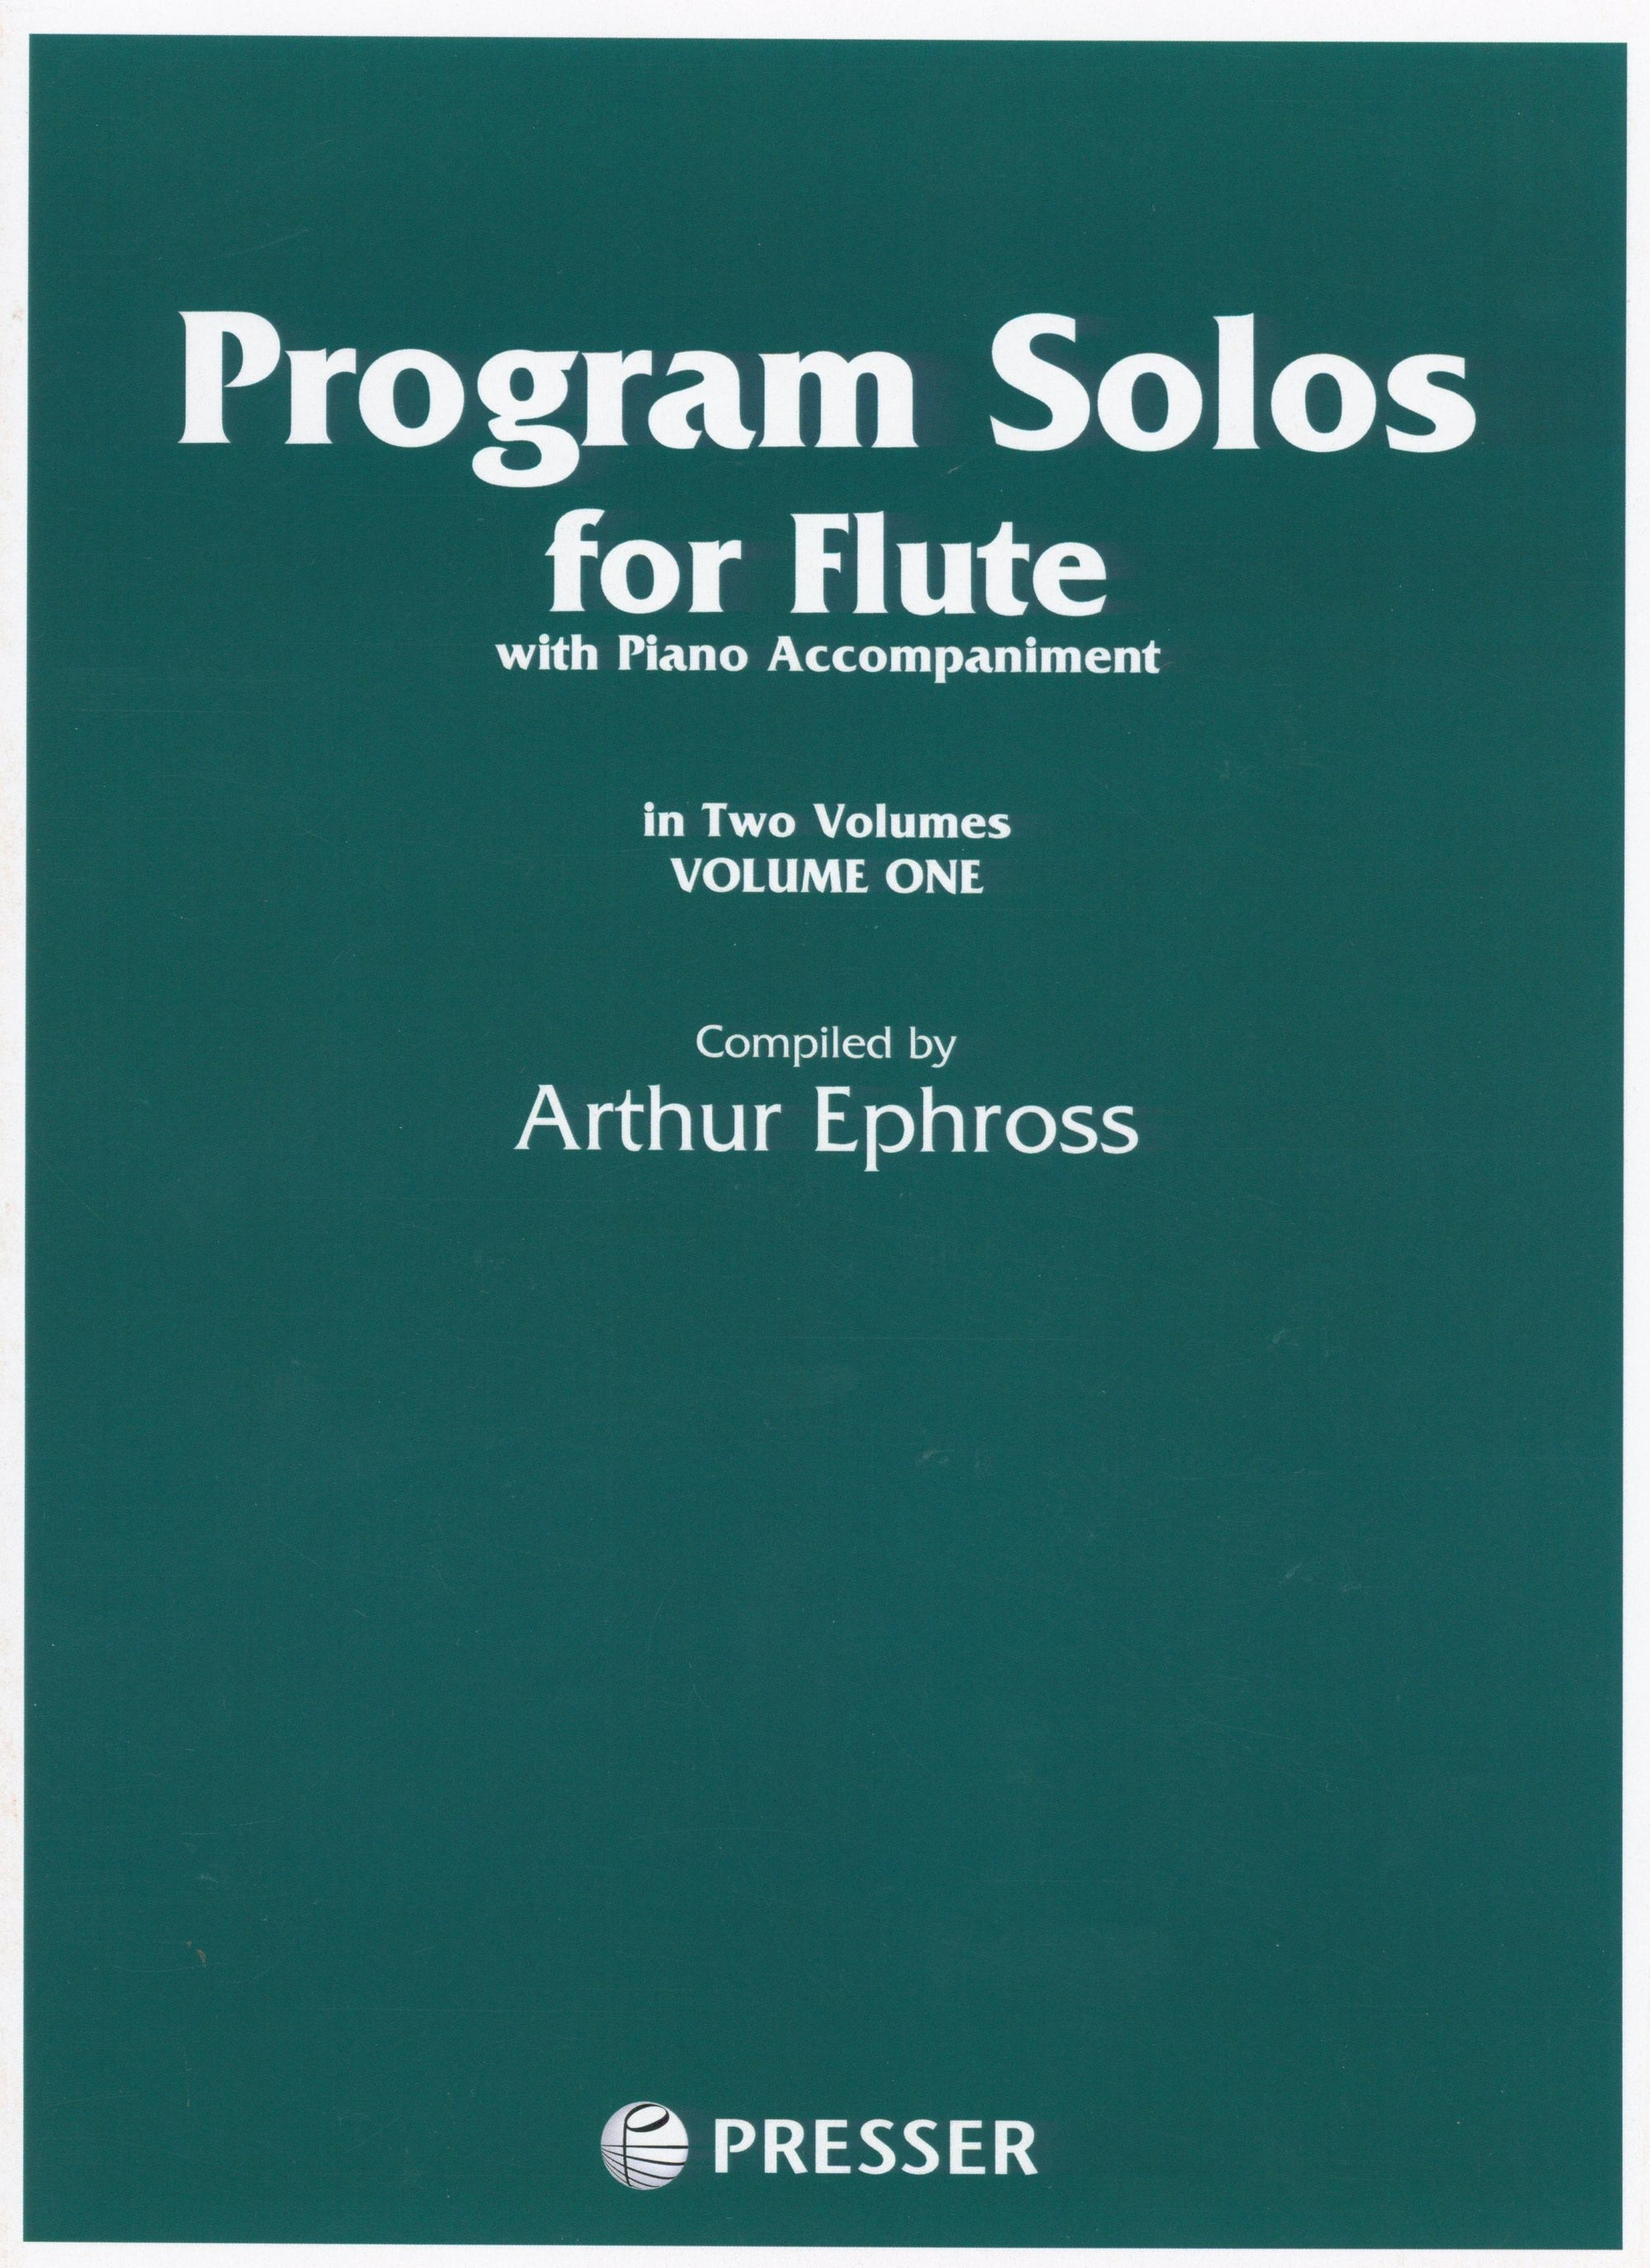 Program Solos for Flute - Volume 1